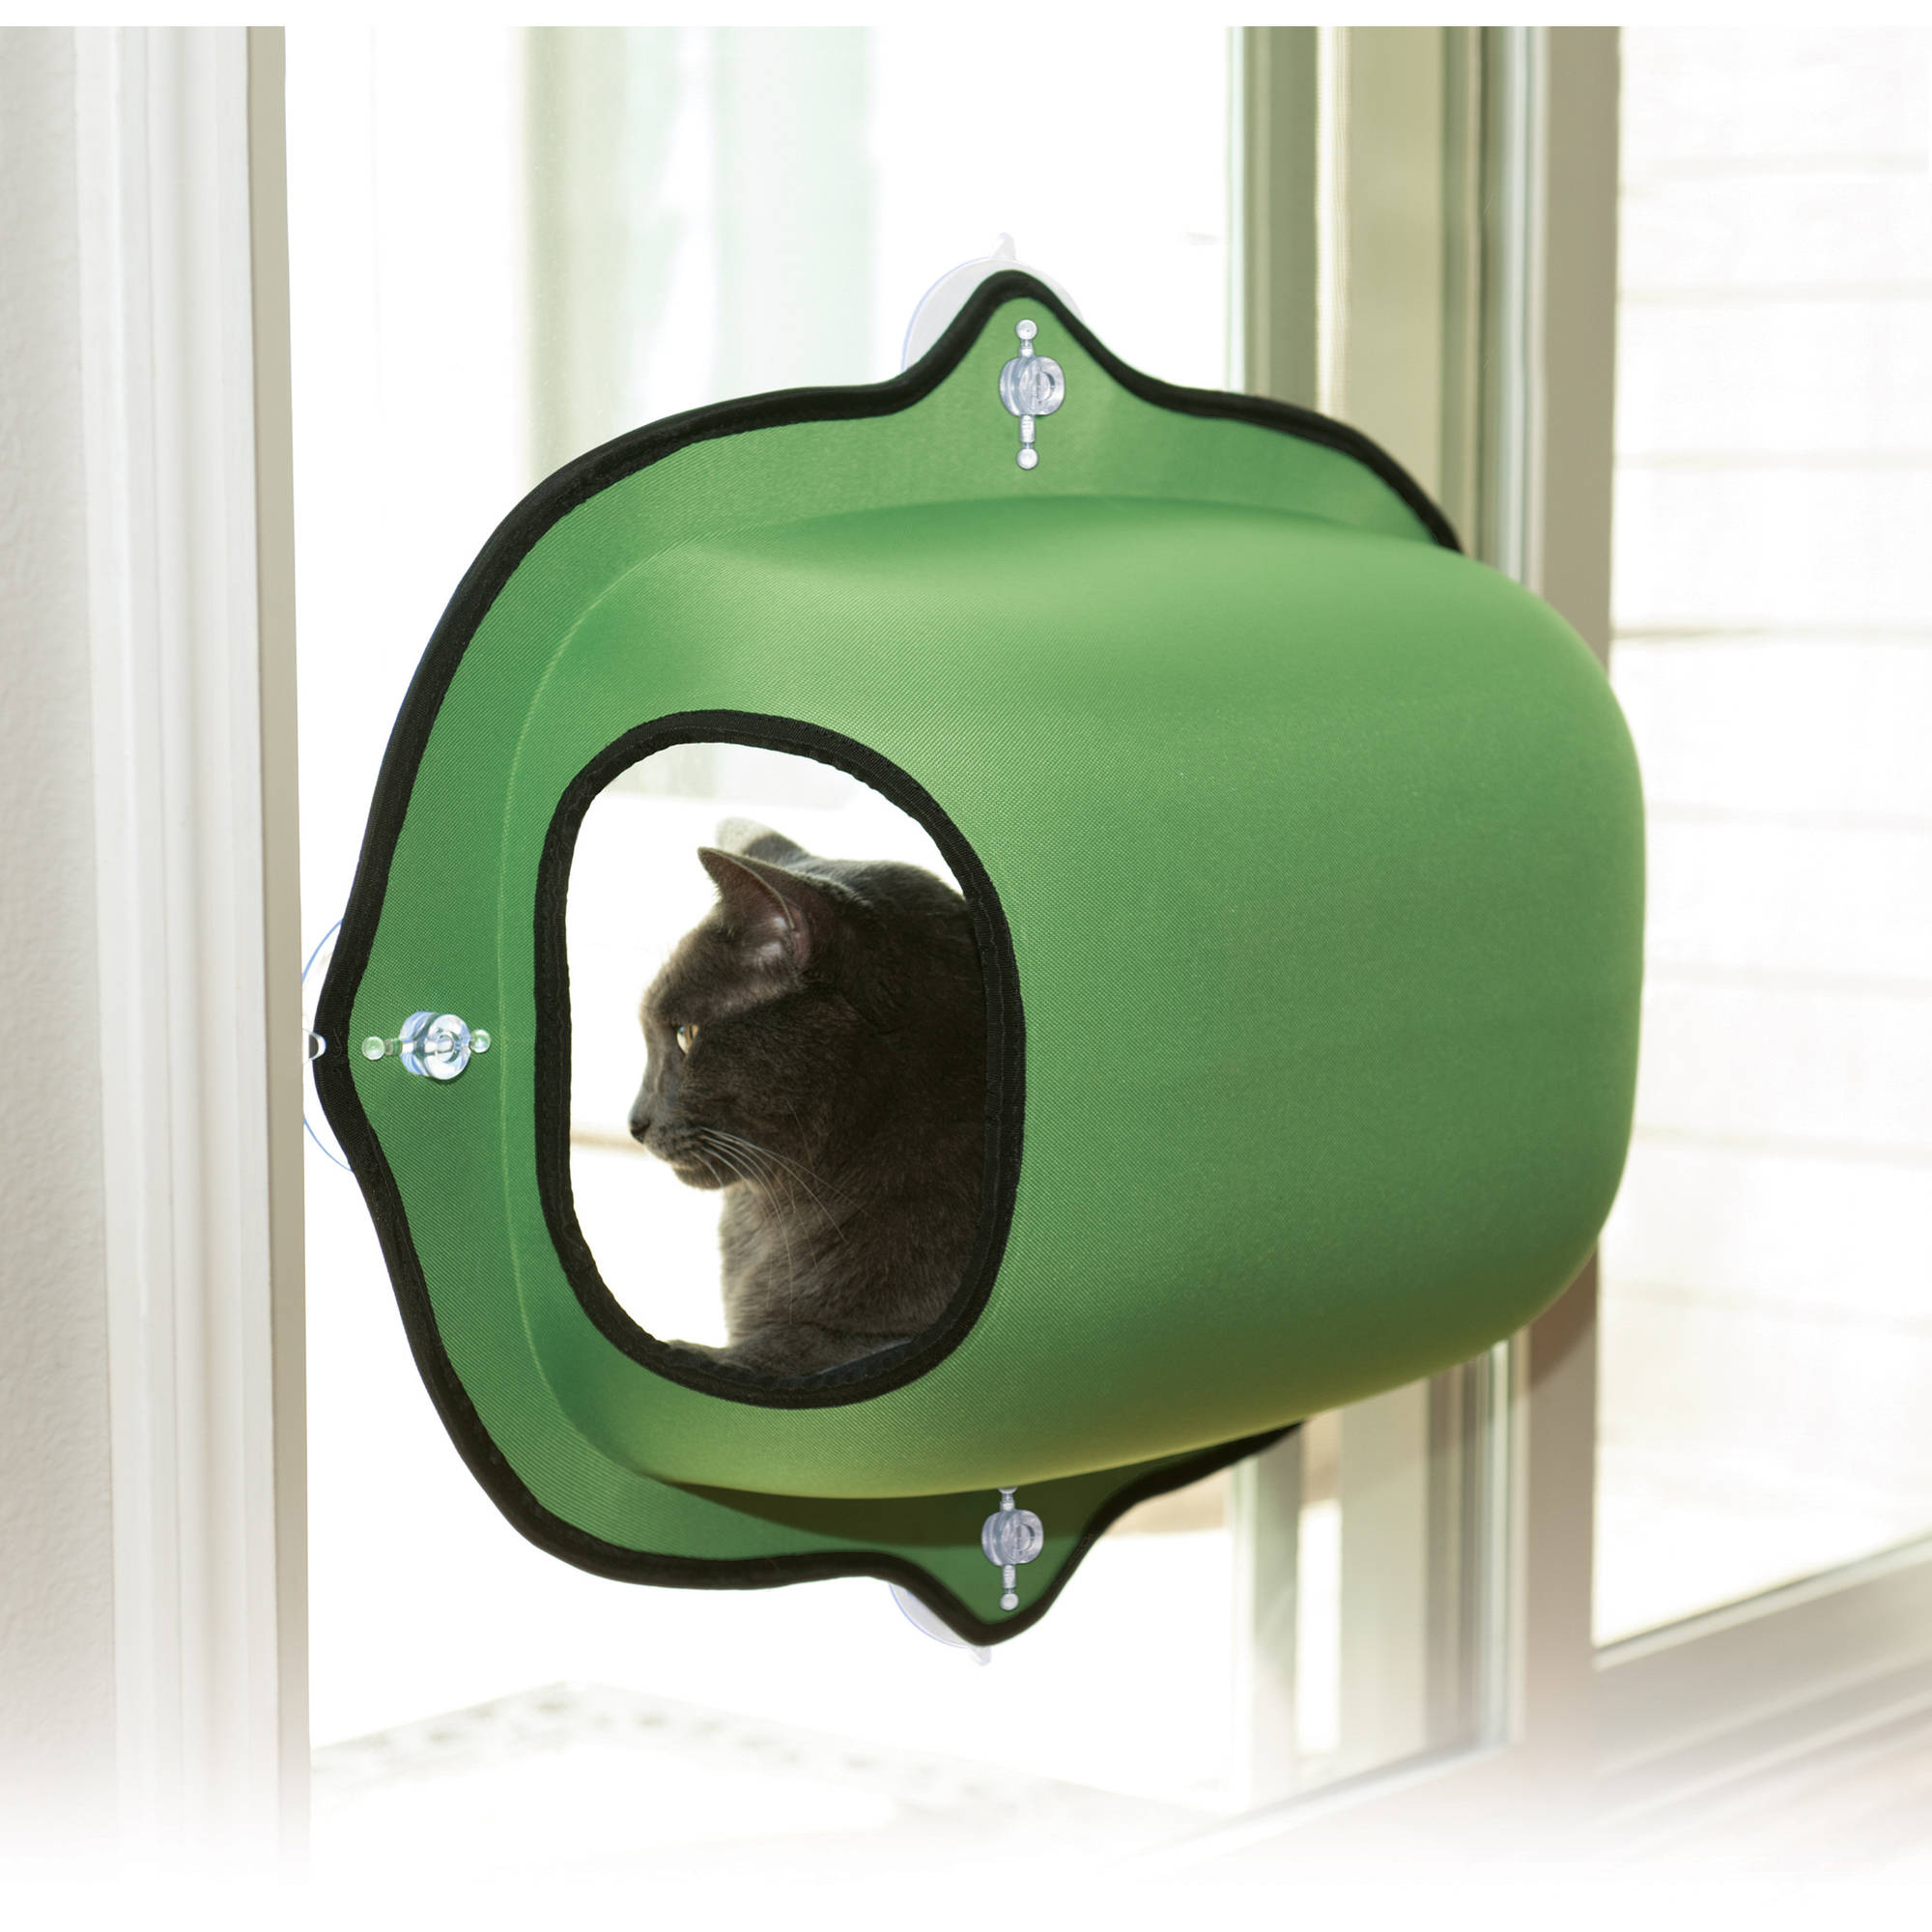 K&H Pet Products EZ Mount Window Cat Bed, Small, Green